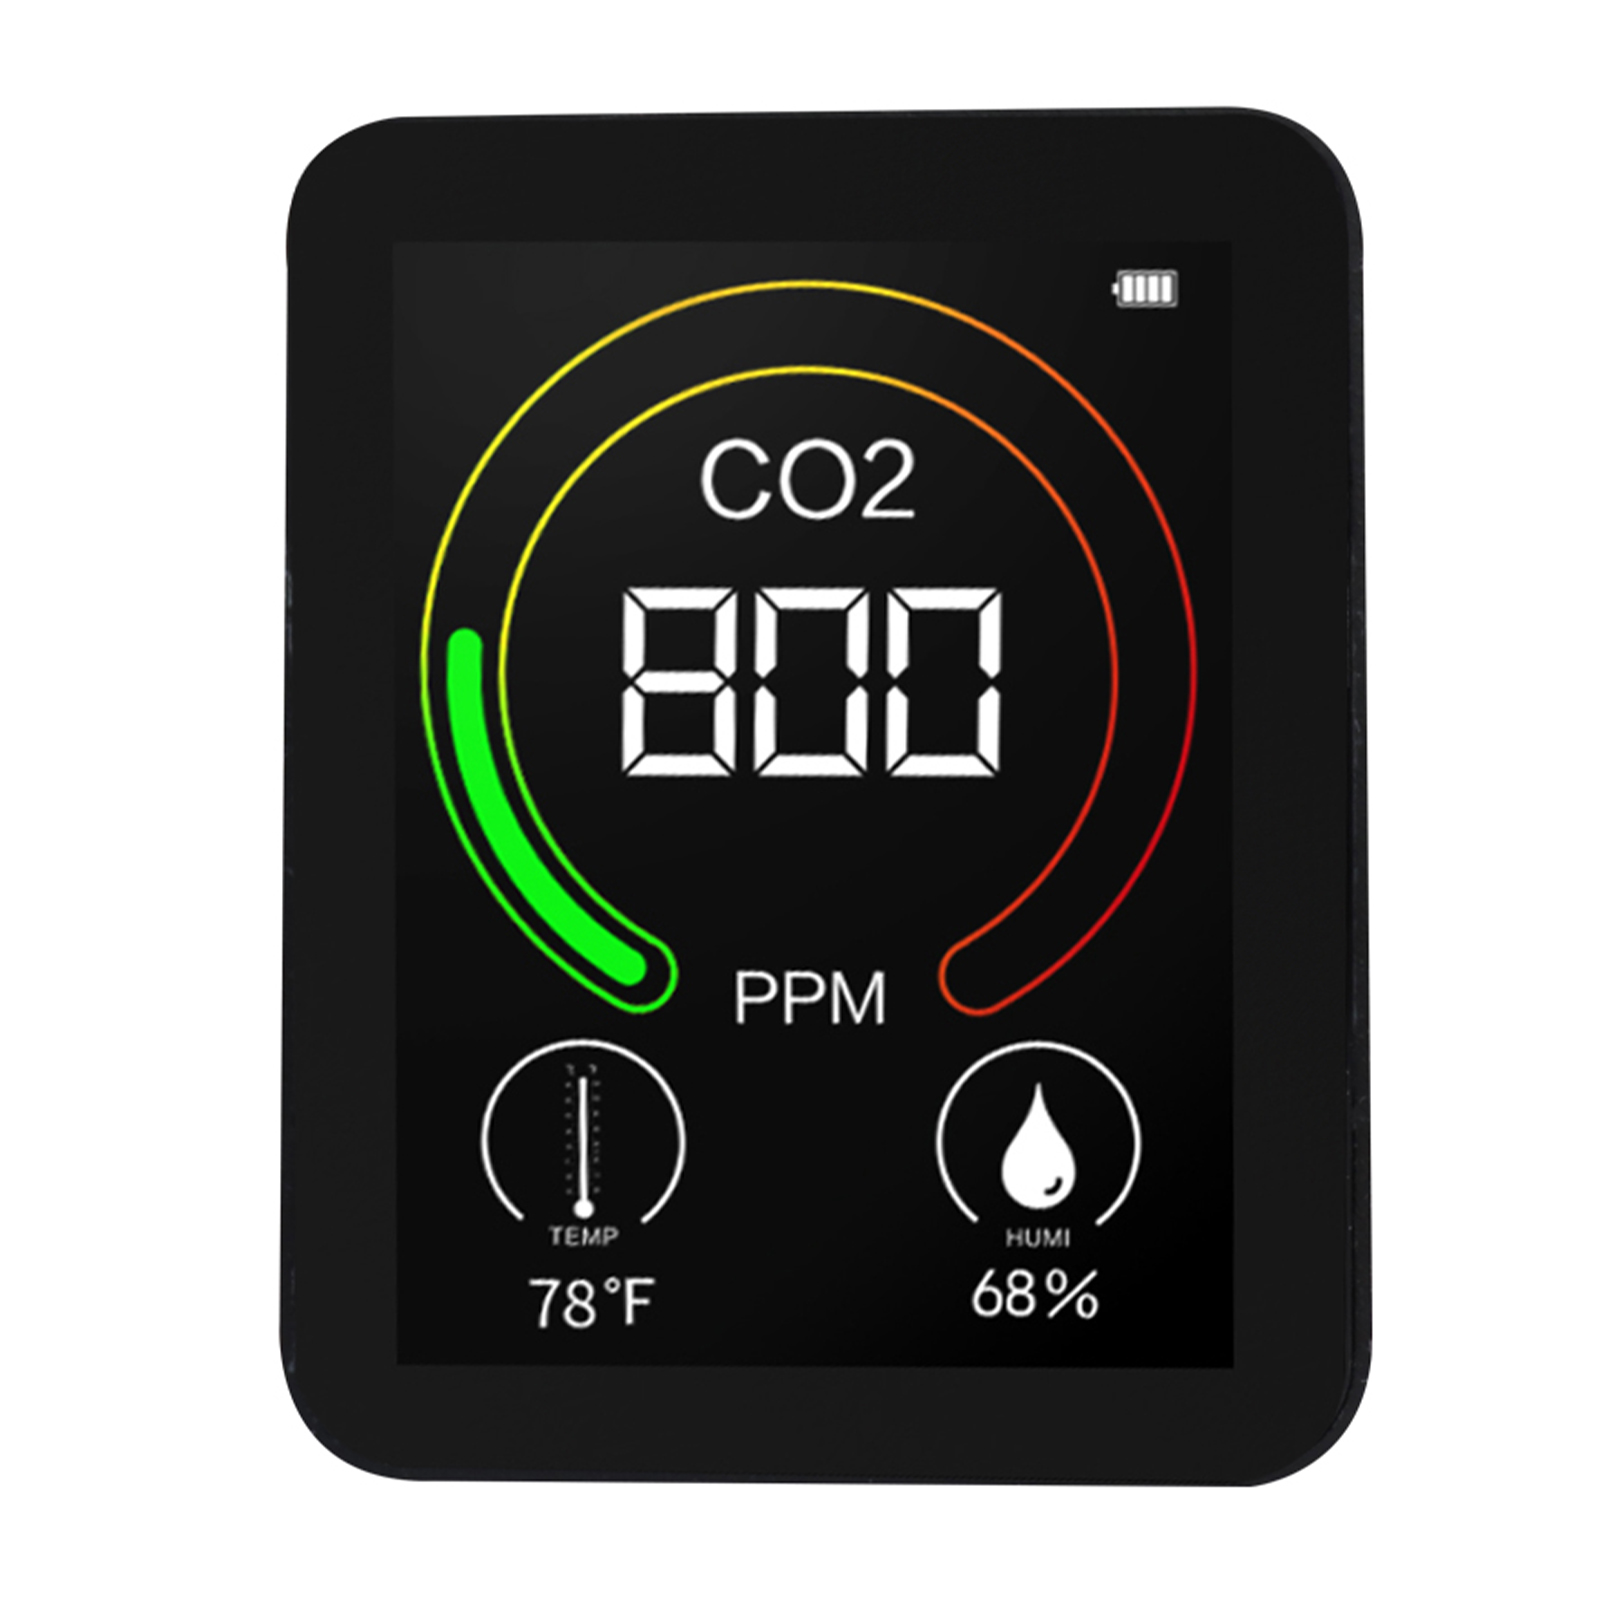 Analytical Carbon Dioxide Meter Co2 Detector Temperature Humidity Air Quality Monitor Digital Co2 Detector Air Analyzer Accurate Tester Buy One Get One Free